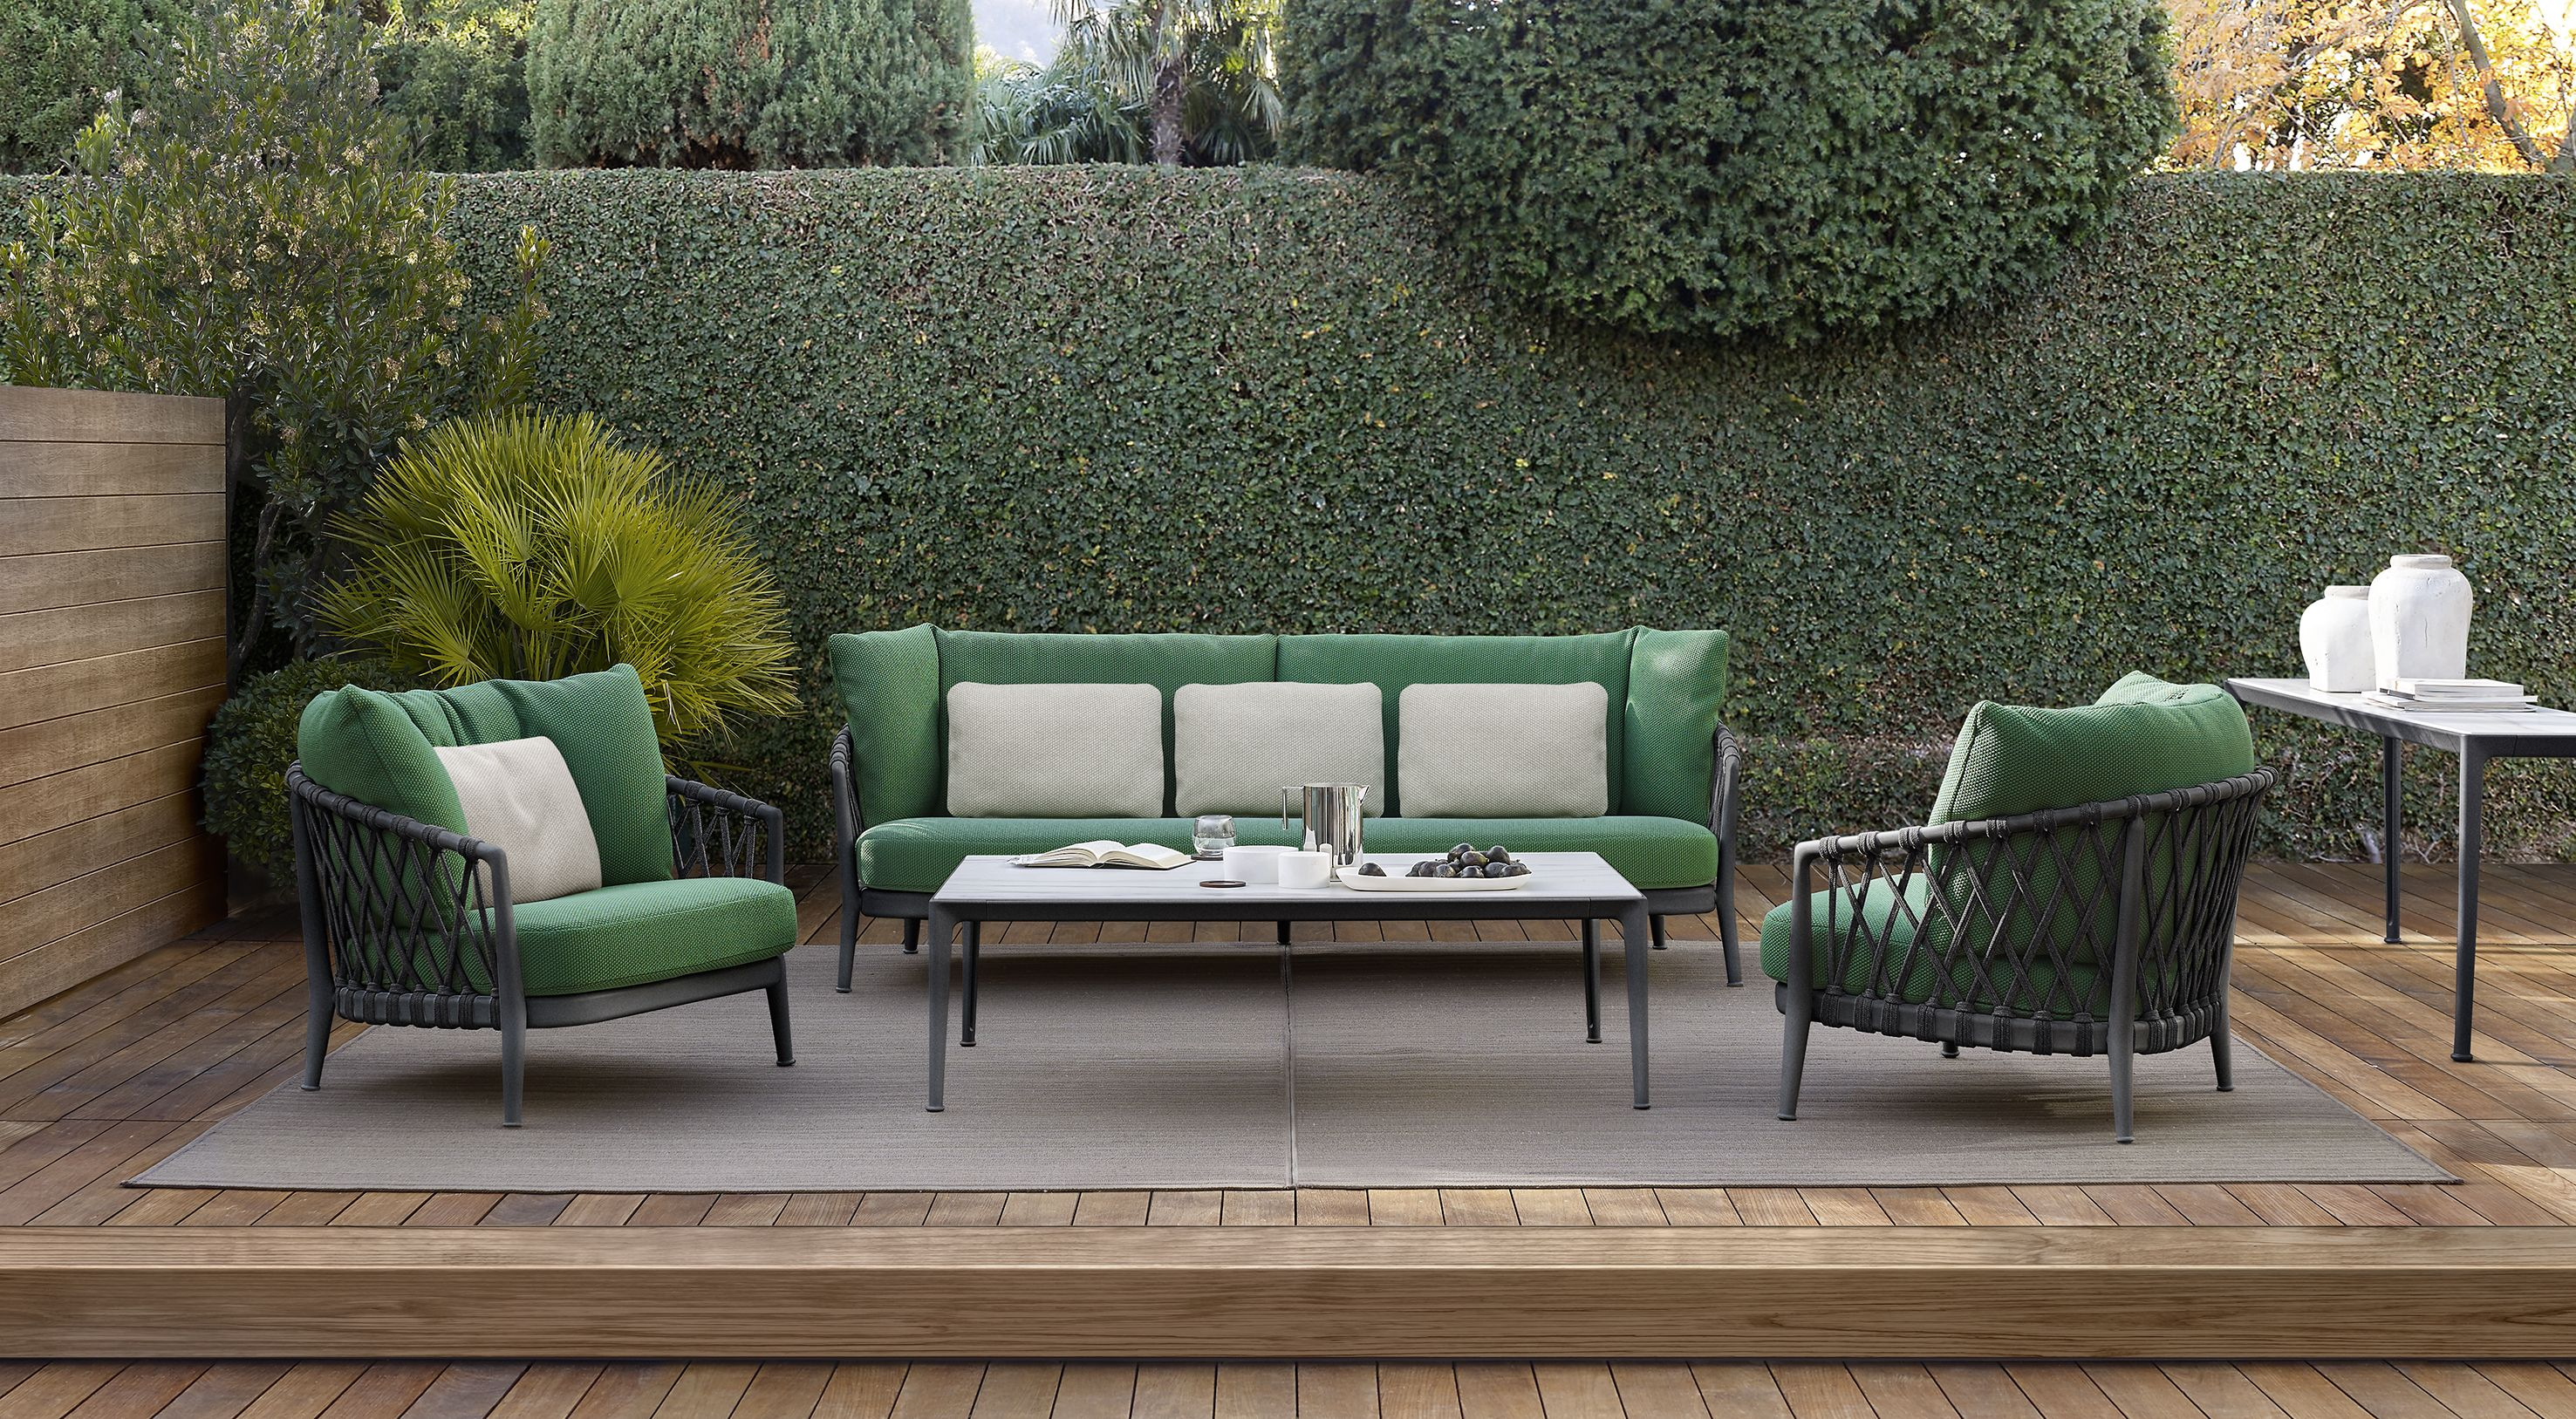 B&B ITALIA Designed by Doshi Levien Bay armchairs are interlaced volumes bined with Contemporary Designers Furniture